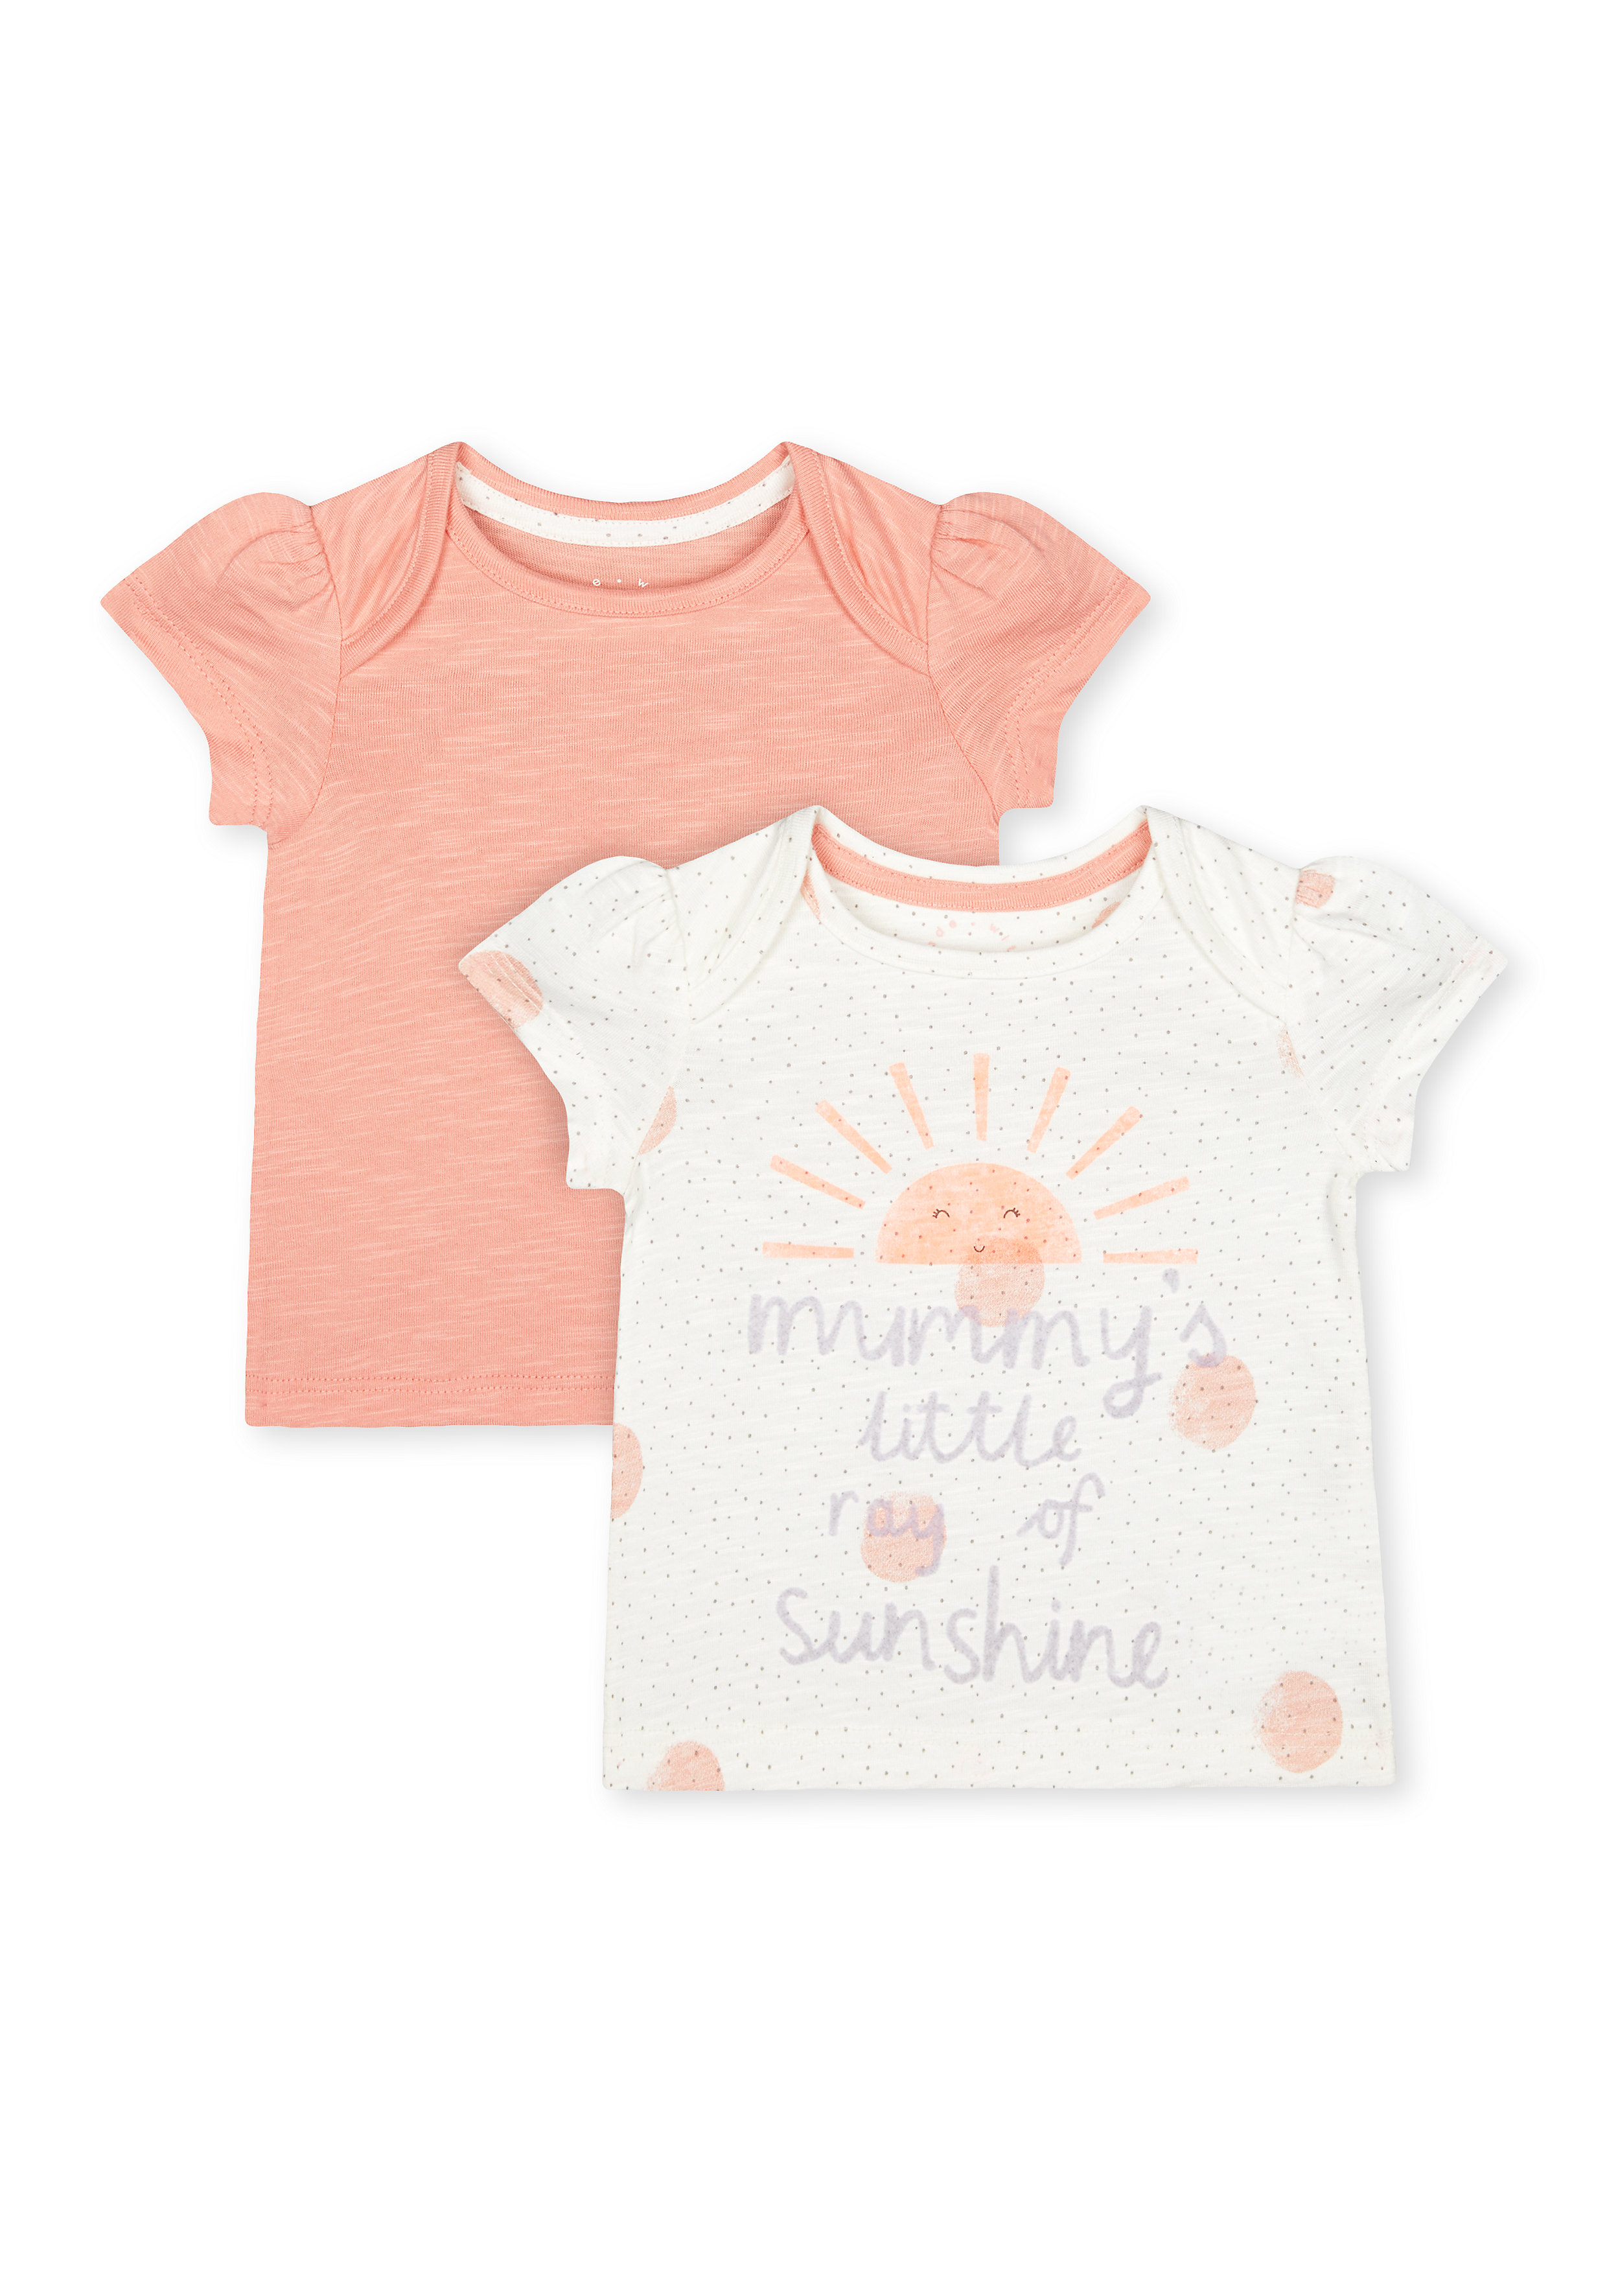 Mothercare | Girls Half Sleeves T-Shirt Text Print - Pack Of 2 - Pink Cream